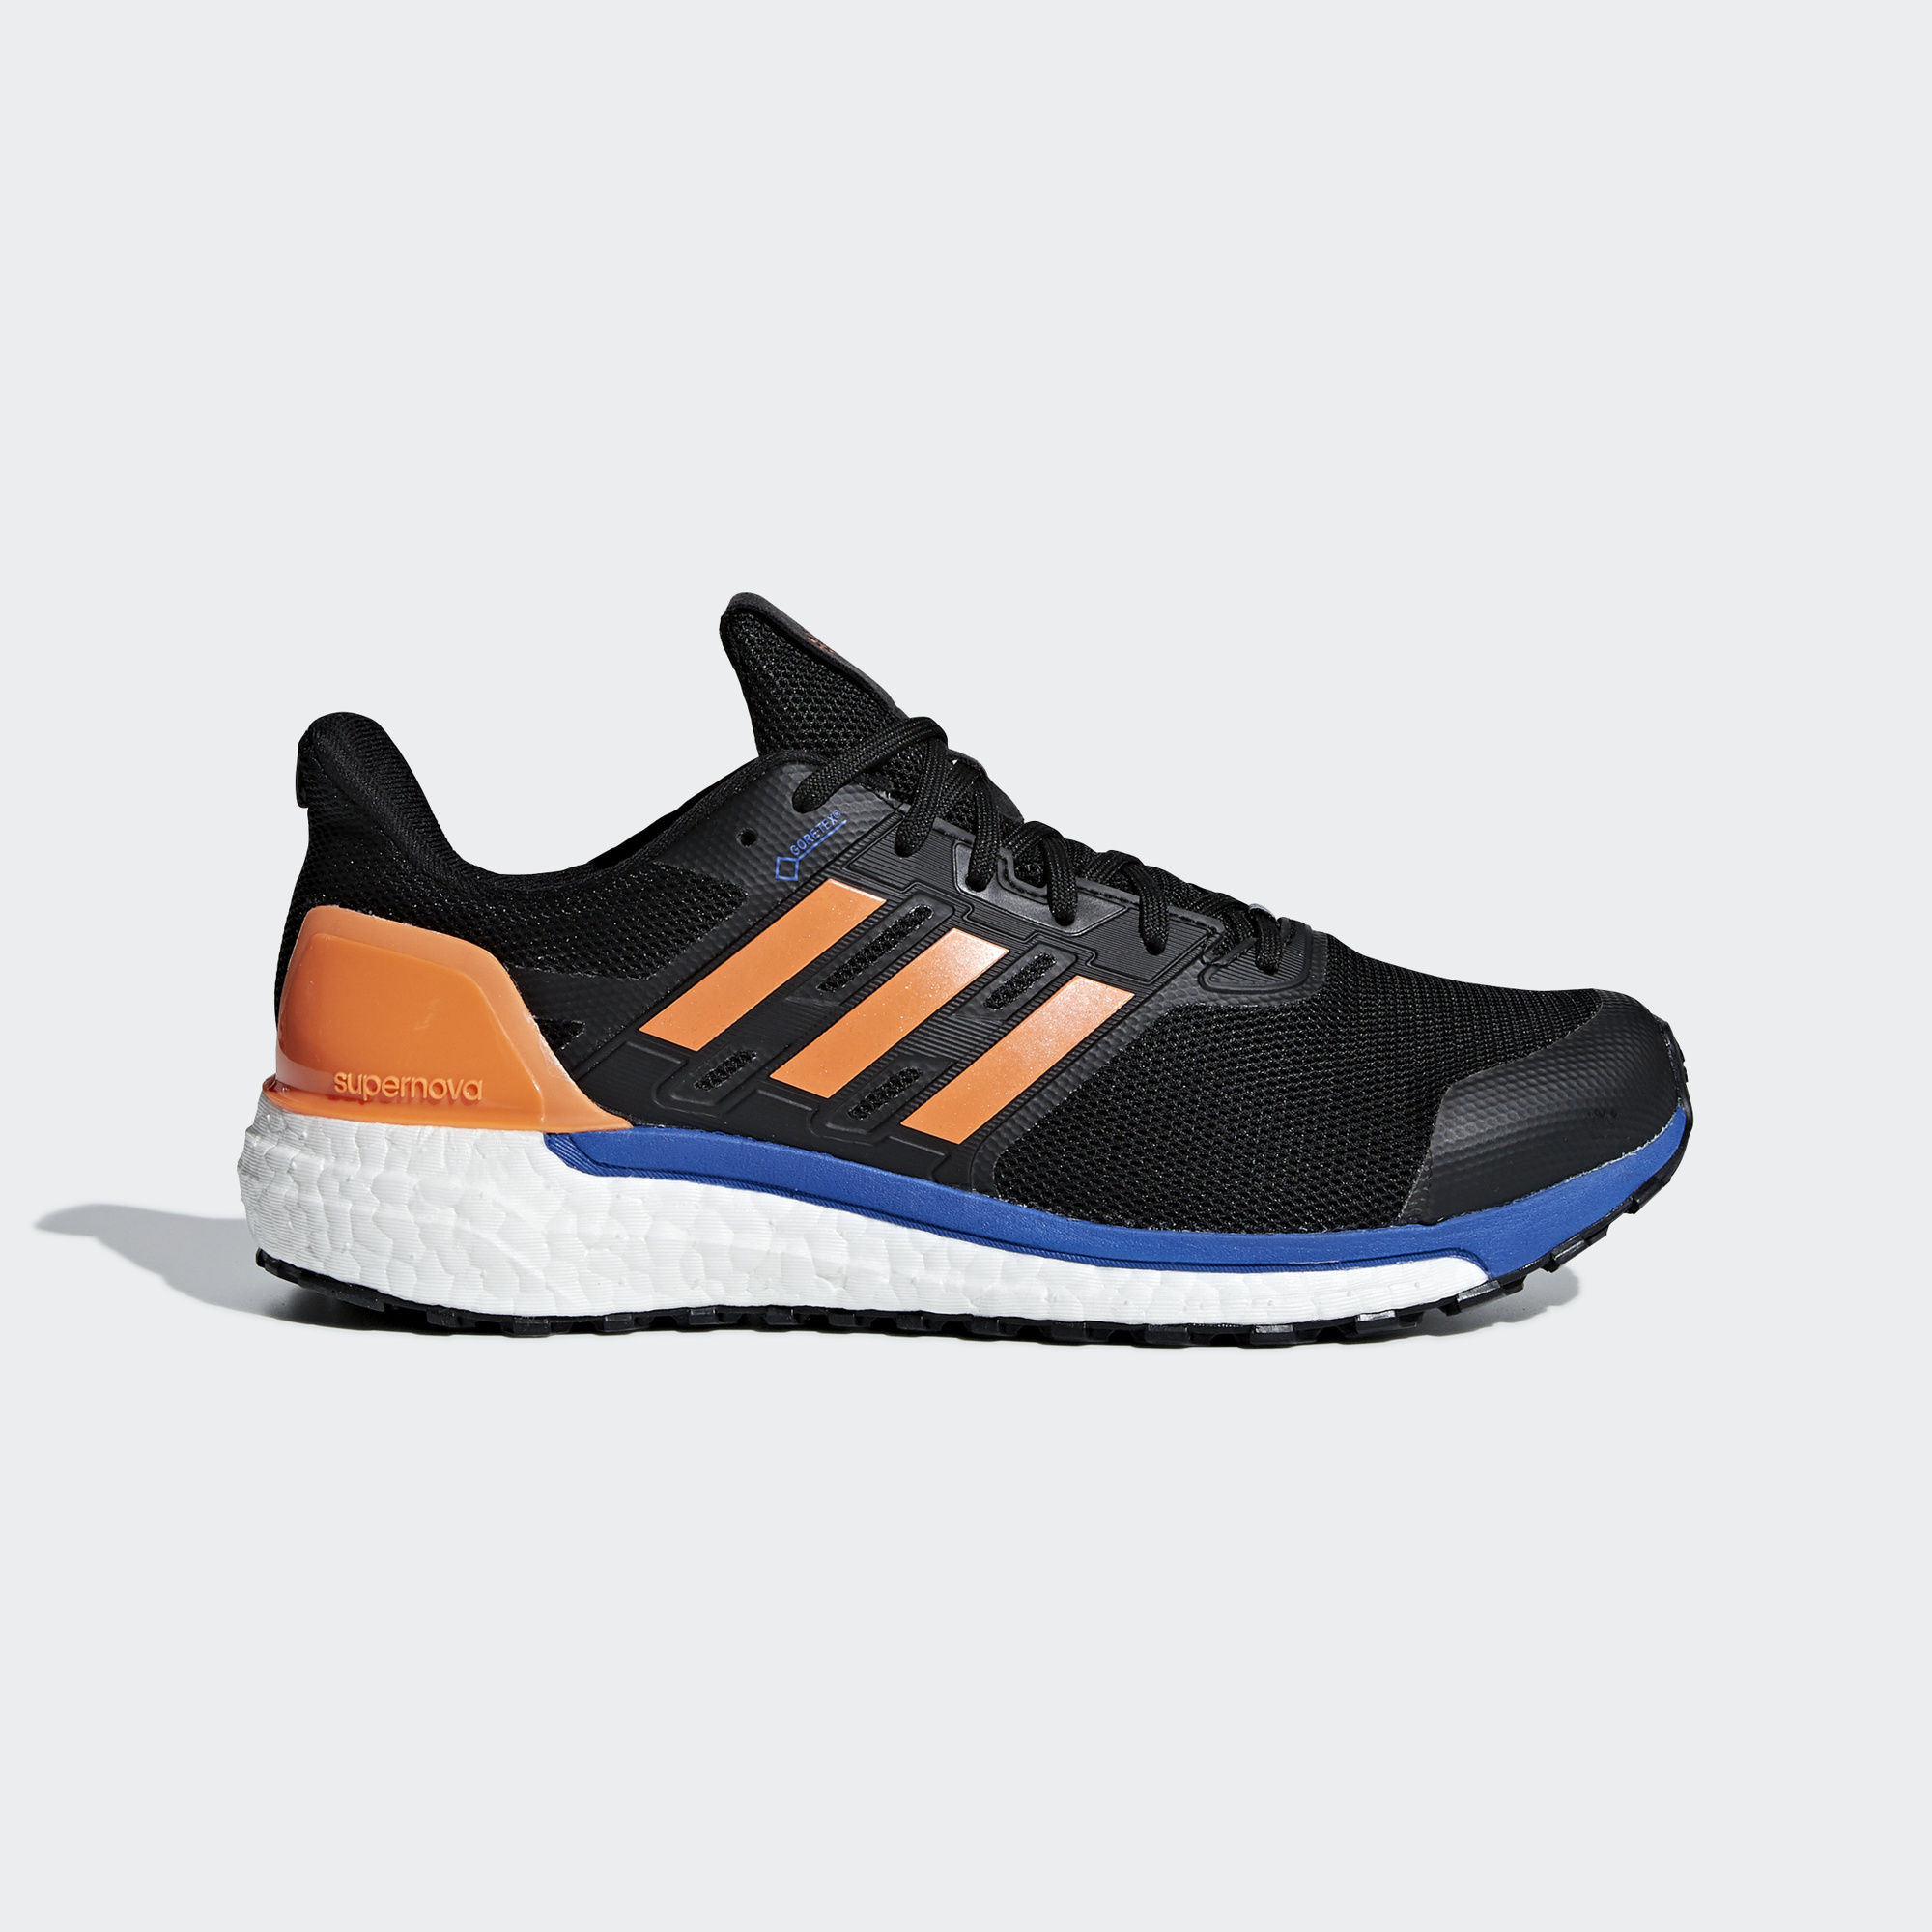 Adidas SUPERNOVA Gore-Tex M - core black / hi-res orange s18 / hi-res blue s18